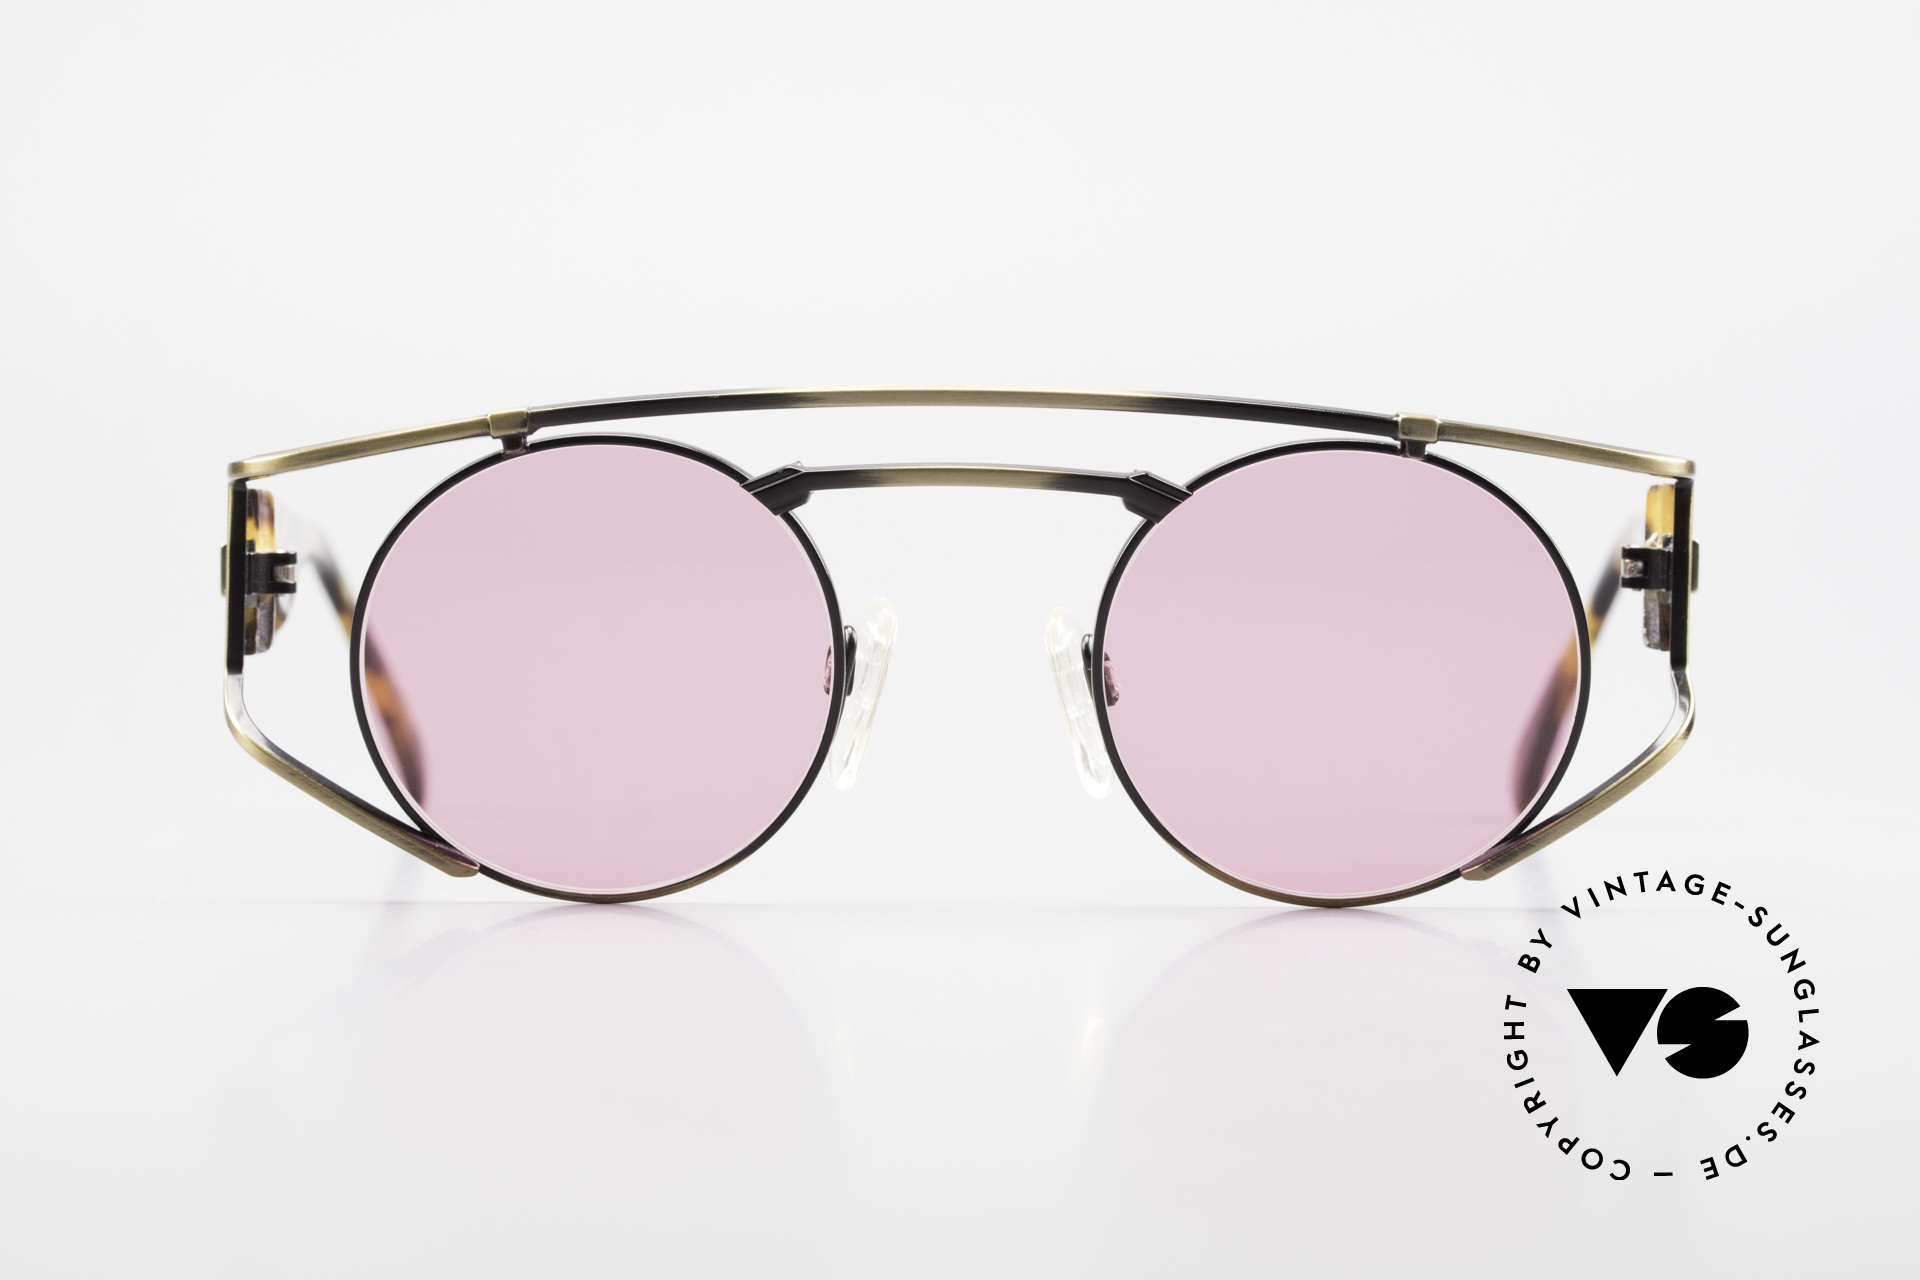 """Neostyle Superstar 1 Steampunk Sunglasses Pink, the name says it all: """"SUPERSTAR vintage glasses"""", Made for Men and Women"""